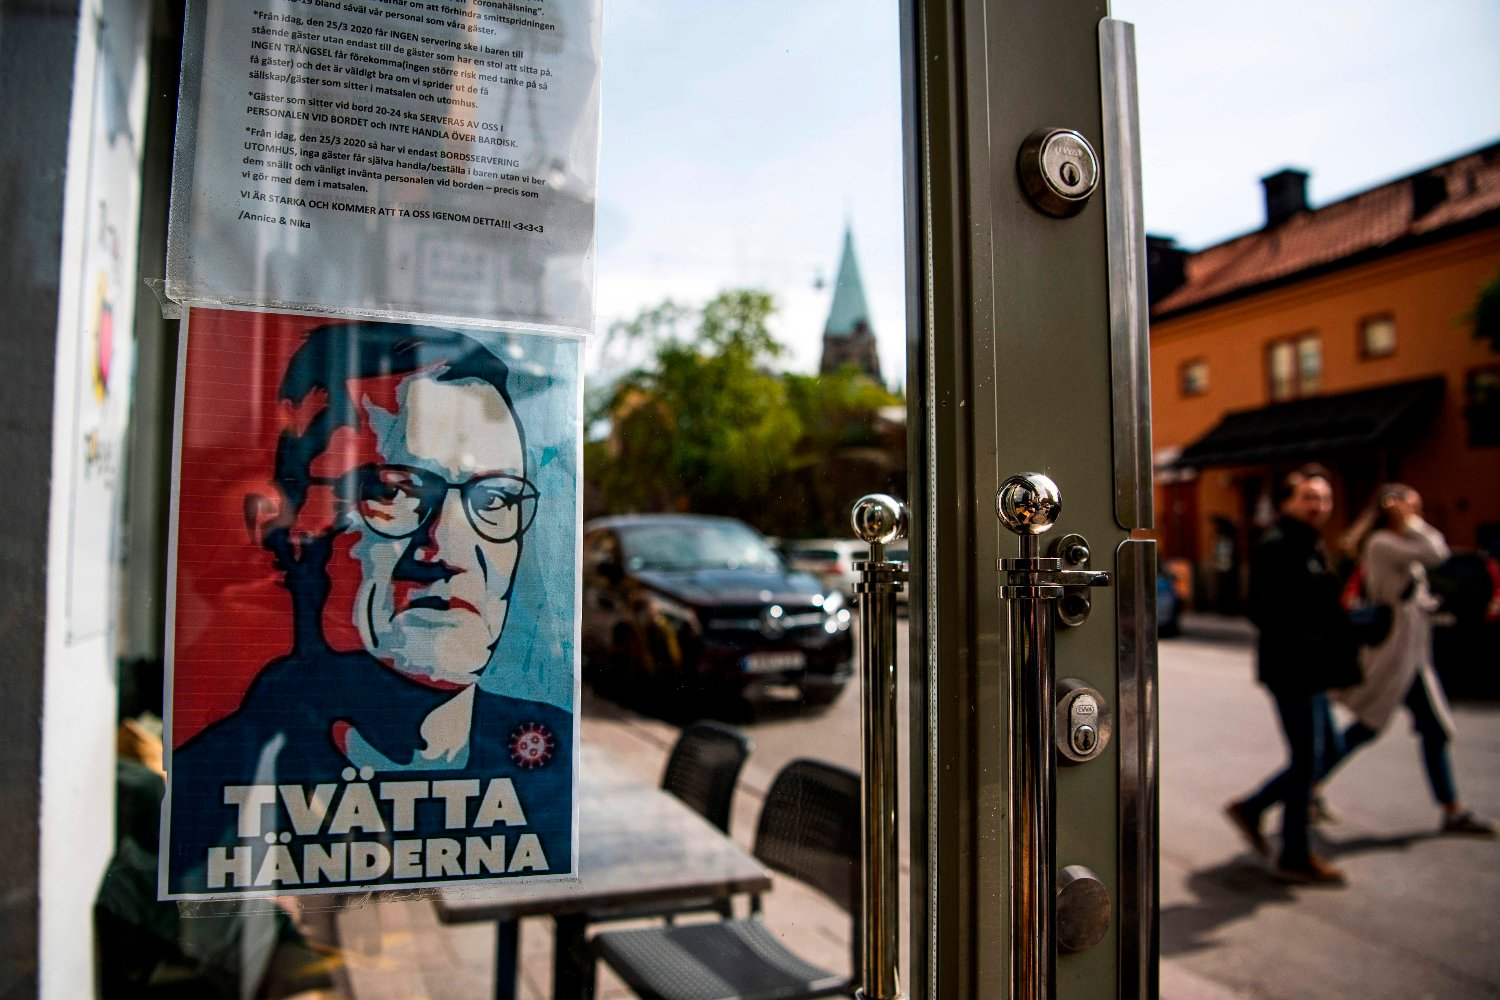 A sign with a portrait of Anders Tegnell, the face of the country's response to the novel coronavirus COVID-19 pandemic, is hanged at an entrance to a restaurant to instruct people to wash their hands on May 10, 2020 in Sodermalm, Stockholm.